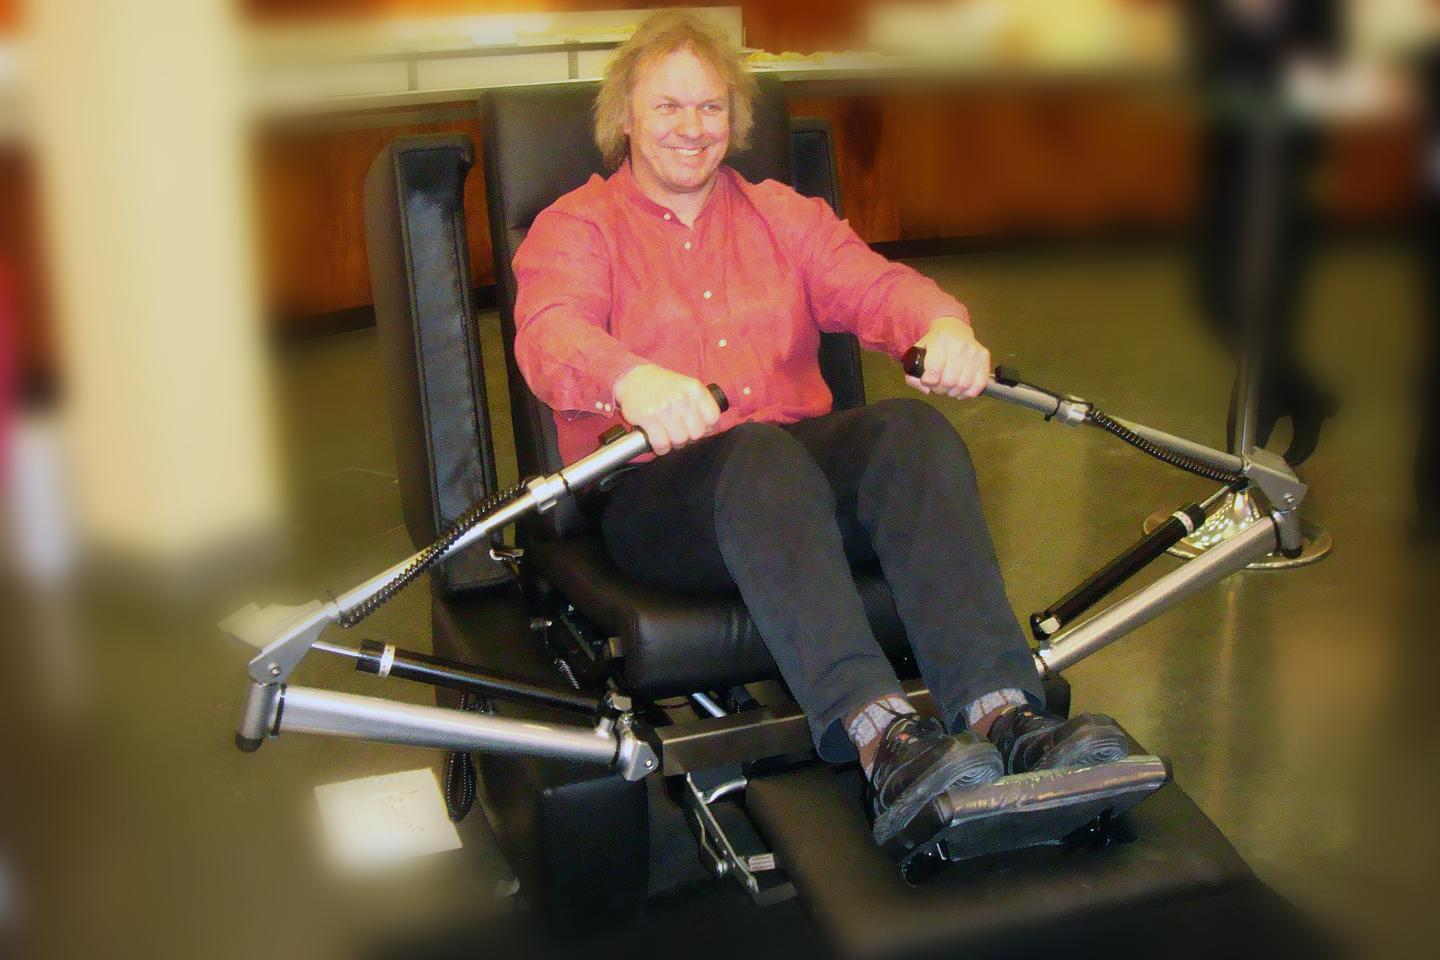 CEO of Innovationsmanufaktur Prof. Eckehard Fozzy Moritz using the GEWOS armchair for rowing practice (Photo: ©Innovationsmanufaktur GmbH)